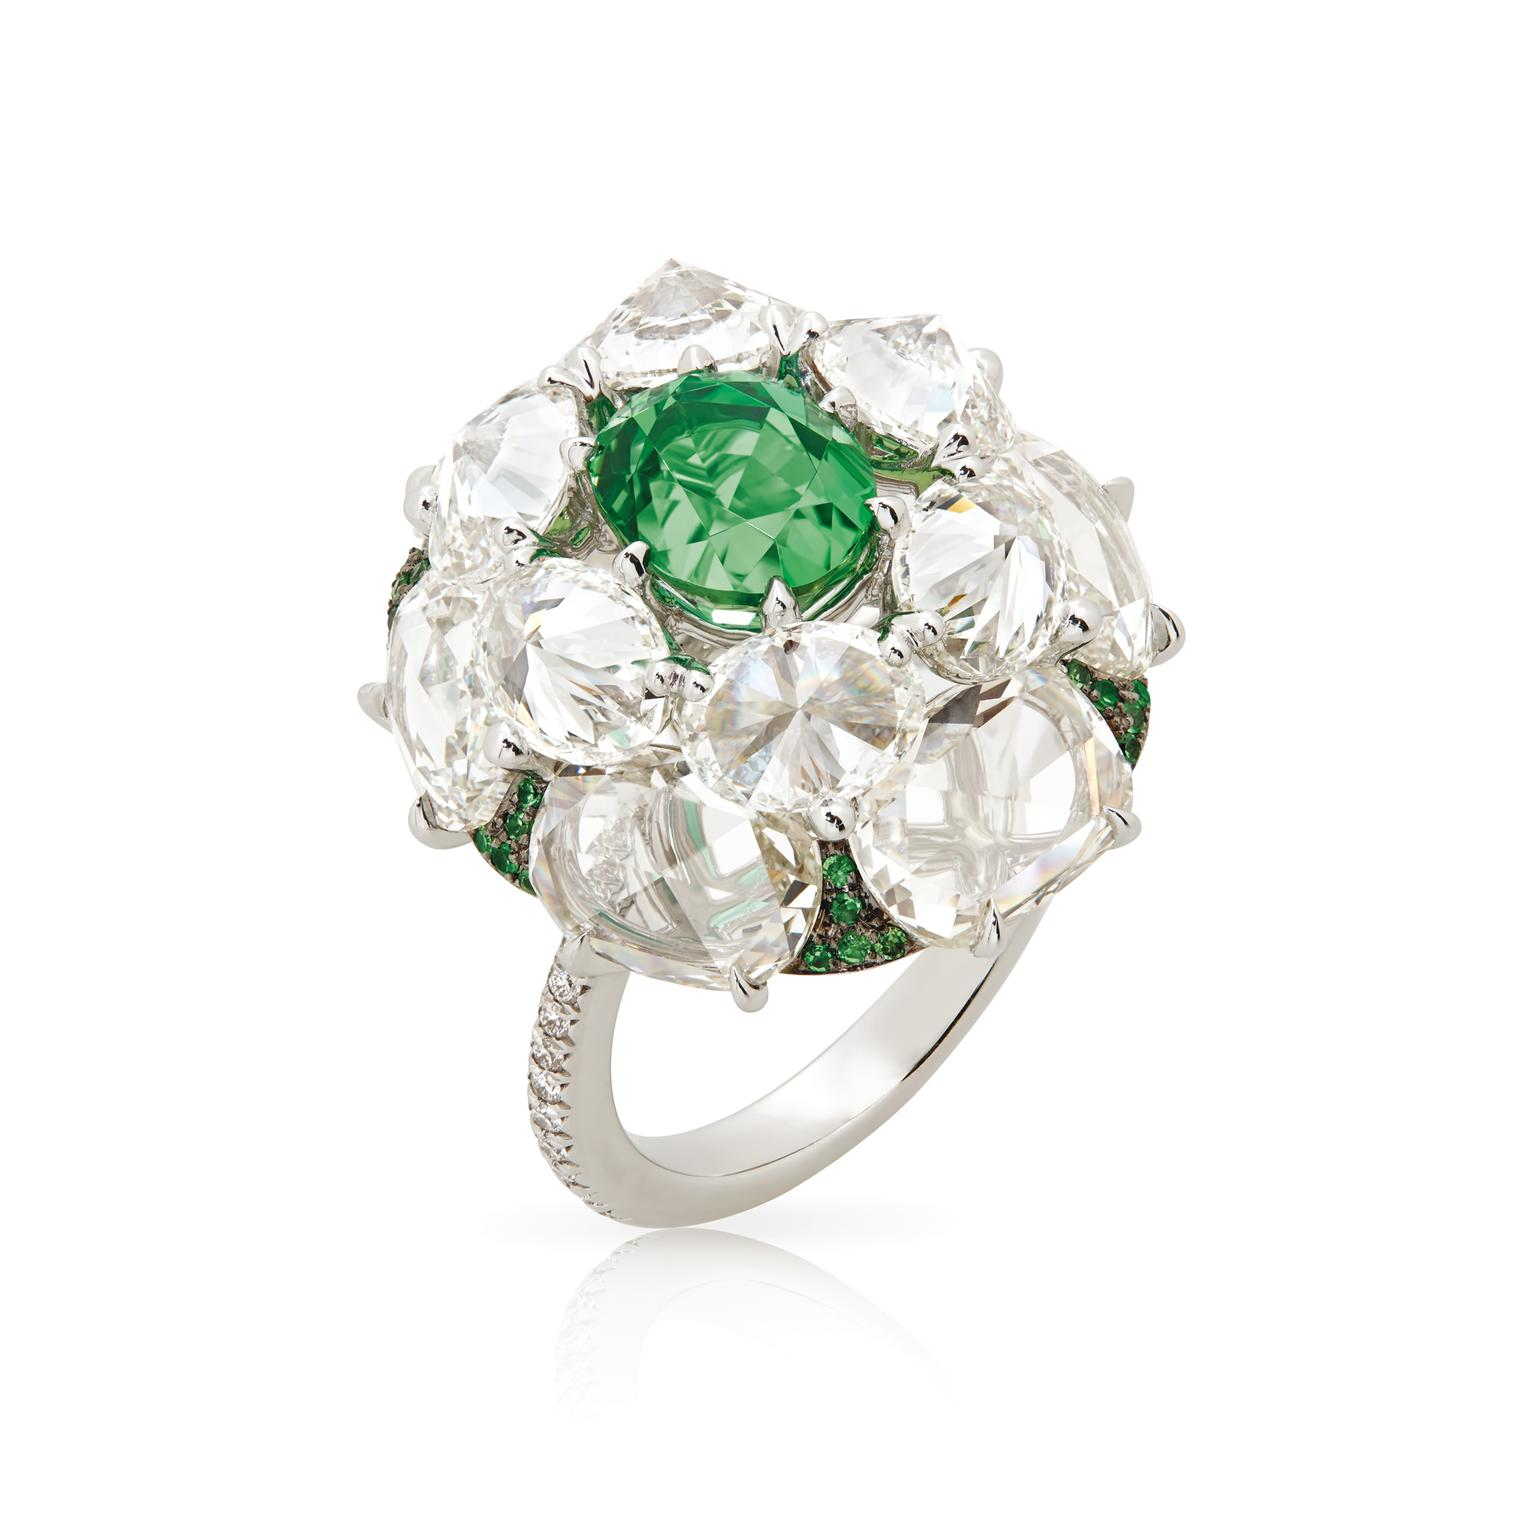 Nirav Modi kornerupine ring with diamonds